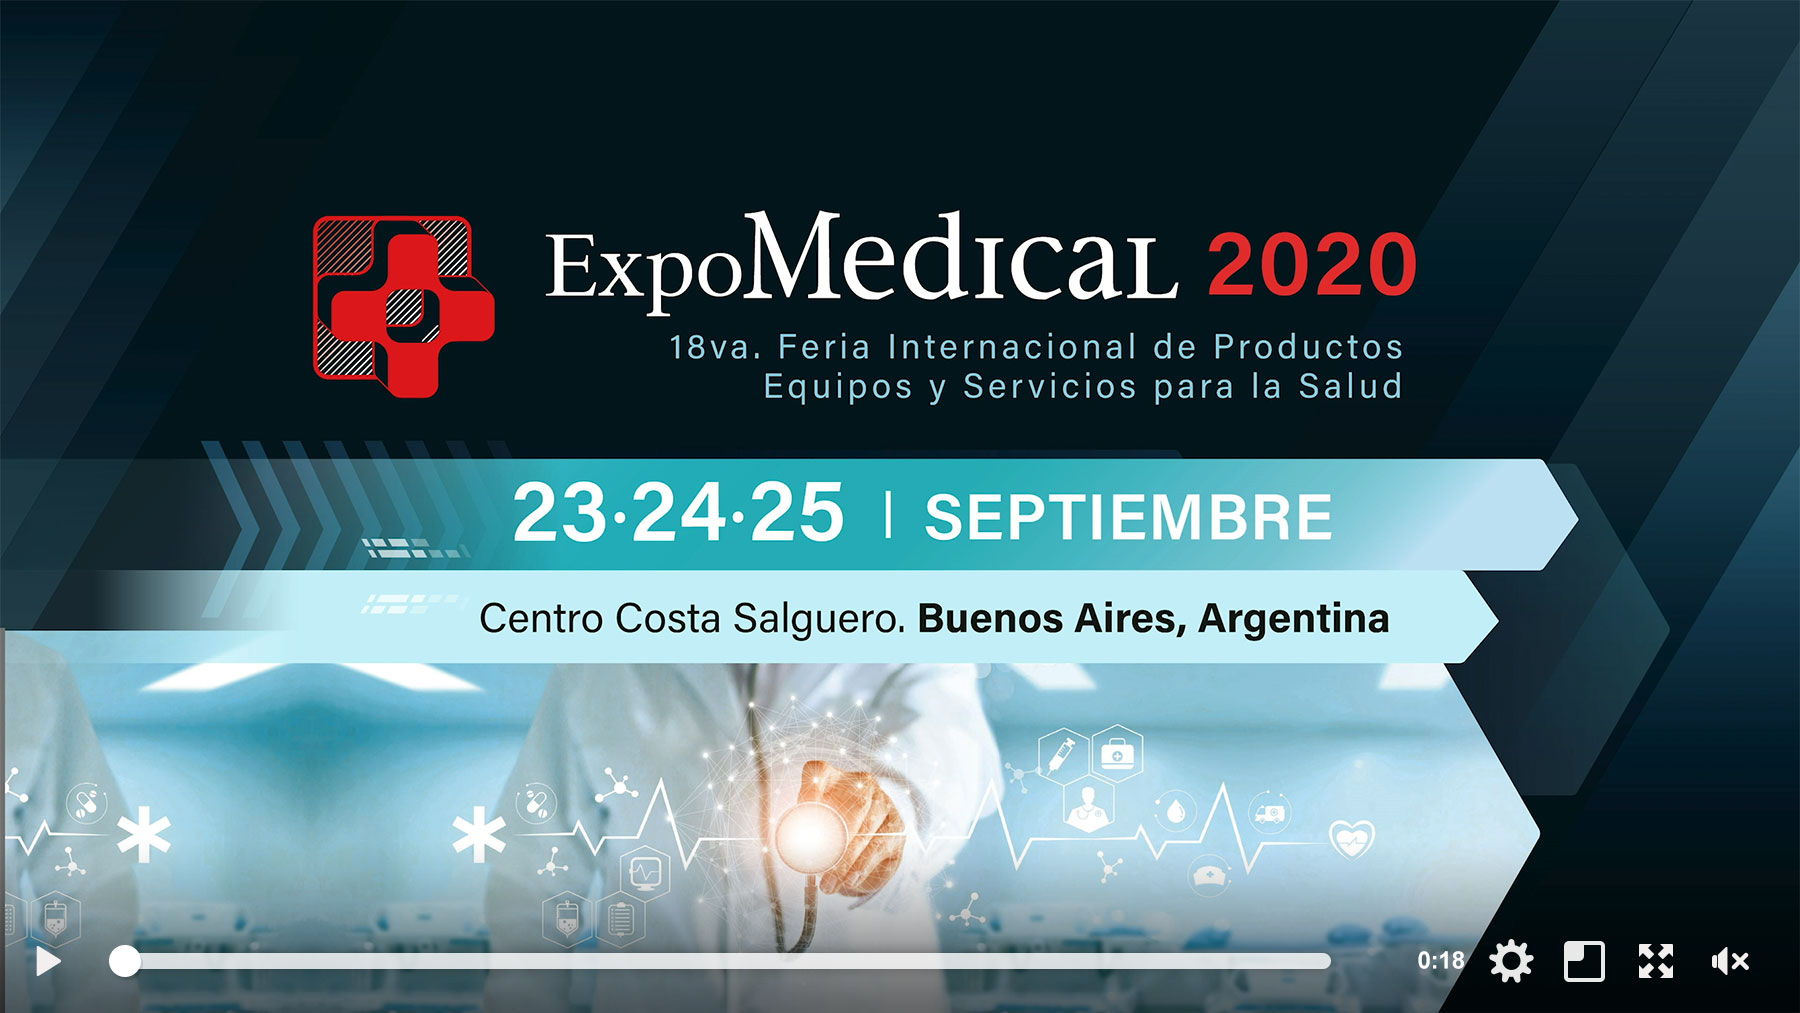 ExpoMedical 2020